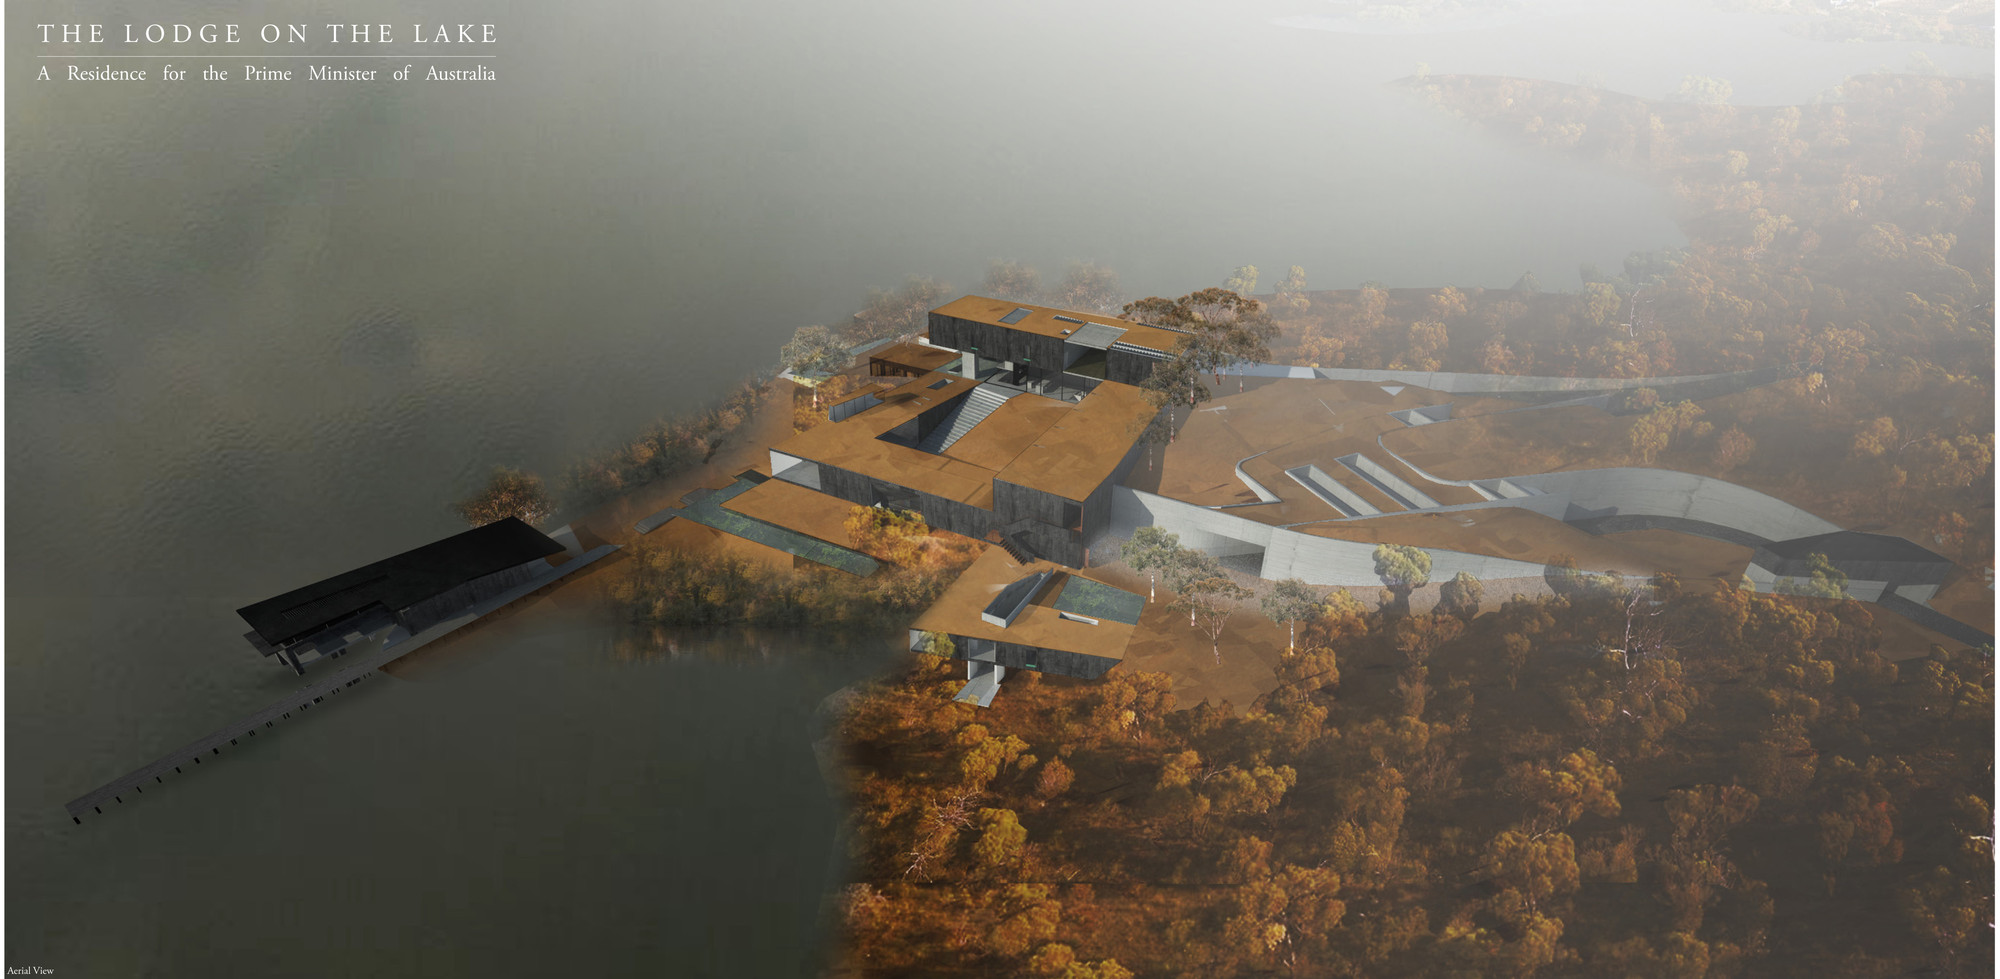 The Lodge on the Lake Winning Proposal / Henry Stephens, Nick Roberts, Jack Davies, Courtesy of Henry Stephens, Nick Roberts, and Jack Davies